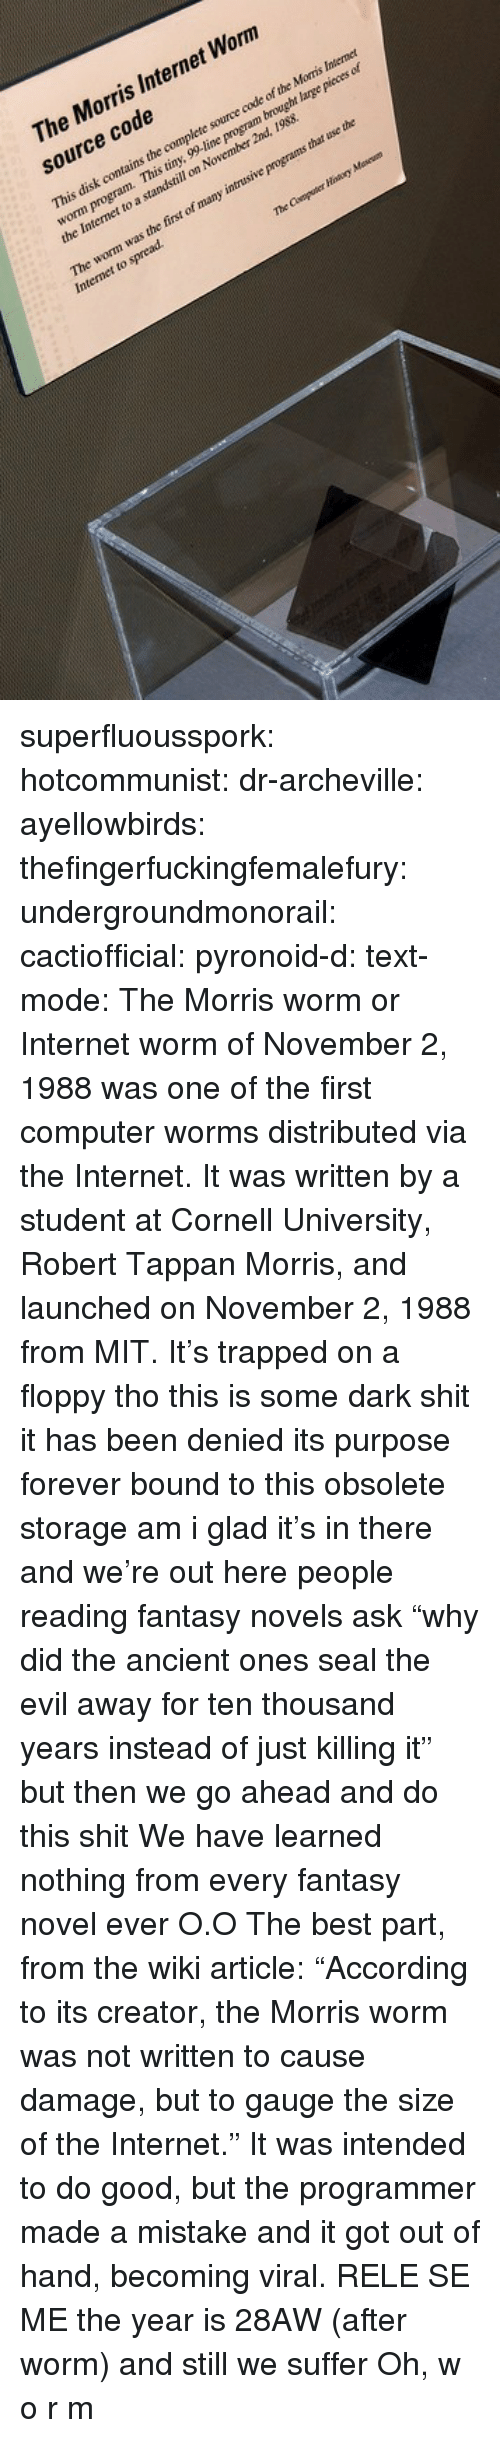 "Internet, Shit, and Target: The Morris Internet Worm  source code  This disk contains the complete source code of the Morns Intemner  worm program.  This tiny, 99-line program brought  large pieces of  the Itermet  to a standstill on November 2nd, 1988  worm was the fint of many inrusive programs  that use the  Internet to spread superfluousspork: hotcommunist:  dr-archeville:  ayellowbirds:  thefingerfuckingfemalefury:  undergroundmonorail:  cactiofficial:  pyronoid-d:  text-mode:  The Morris worm or Internet worm of November 2, 1988 was one of the first computer worms distributed via the Internet. It was written by a student at Cornell University, Robert Tappan Morris, and launched on November 2, 1988 from MIT.  It's trapped on a floppy tho this is some dark shit it has been denied its purpose forever bound to this obsolete storage  am i glad it's in there and we're out here  people reading fantasy novels ask ""why did the ancient ones seal the evil away for ten thousand years instead of just killing it"" but then we go ahead and do this shit  We have learned nothing from every fantasy novel ever O.O  The best part, from the wiki article: ""According to its creator, the Morris worm was not written to cause damage, but to gauge the size of the Internet."" It was intended to do good, but the programmer made a mistake and it got out of hand, becoming viral.   R̴͓̮͈̞̿͐͛̏̒͂͊̾ͅE͉̝͍̹̣̺̿͗͟͝L̶͖̫͇͙̬ͬ͗͌͘E̻͔̳ͪͭ̑̔̉̉̑ͣ͝͝ͅẢ̲̳̝̗̮ͩS̼̮̠̦͍͈̳̝ͮ̌ͯͯ̌͆͗͠ͅEͦ̎̊͏̪͙̤̦͈̯̱͞͠ ̱̃ͥ̆̄M̛̝̘̺̥̙̱͚ͣ̋͊̚E̪̮͍̘̟̟͚͖͐   the year is 28AW (after worm) and still we suffer   Oh, w o r m"